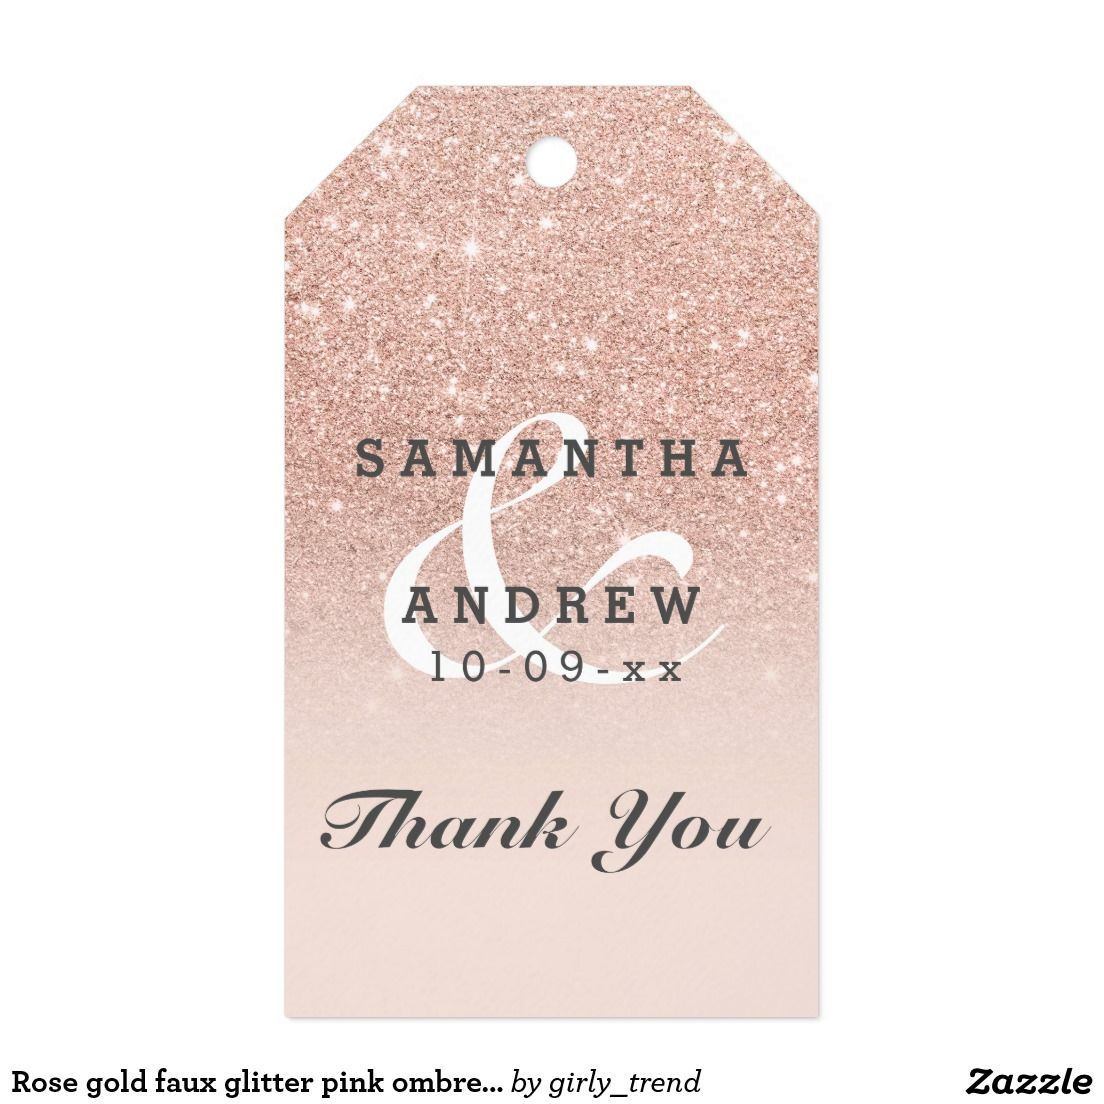 Rose gold faux glitter pink ombre wedding favor gift tags ...